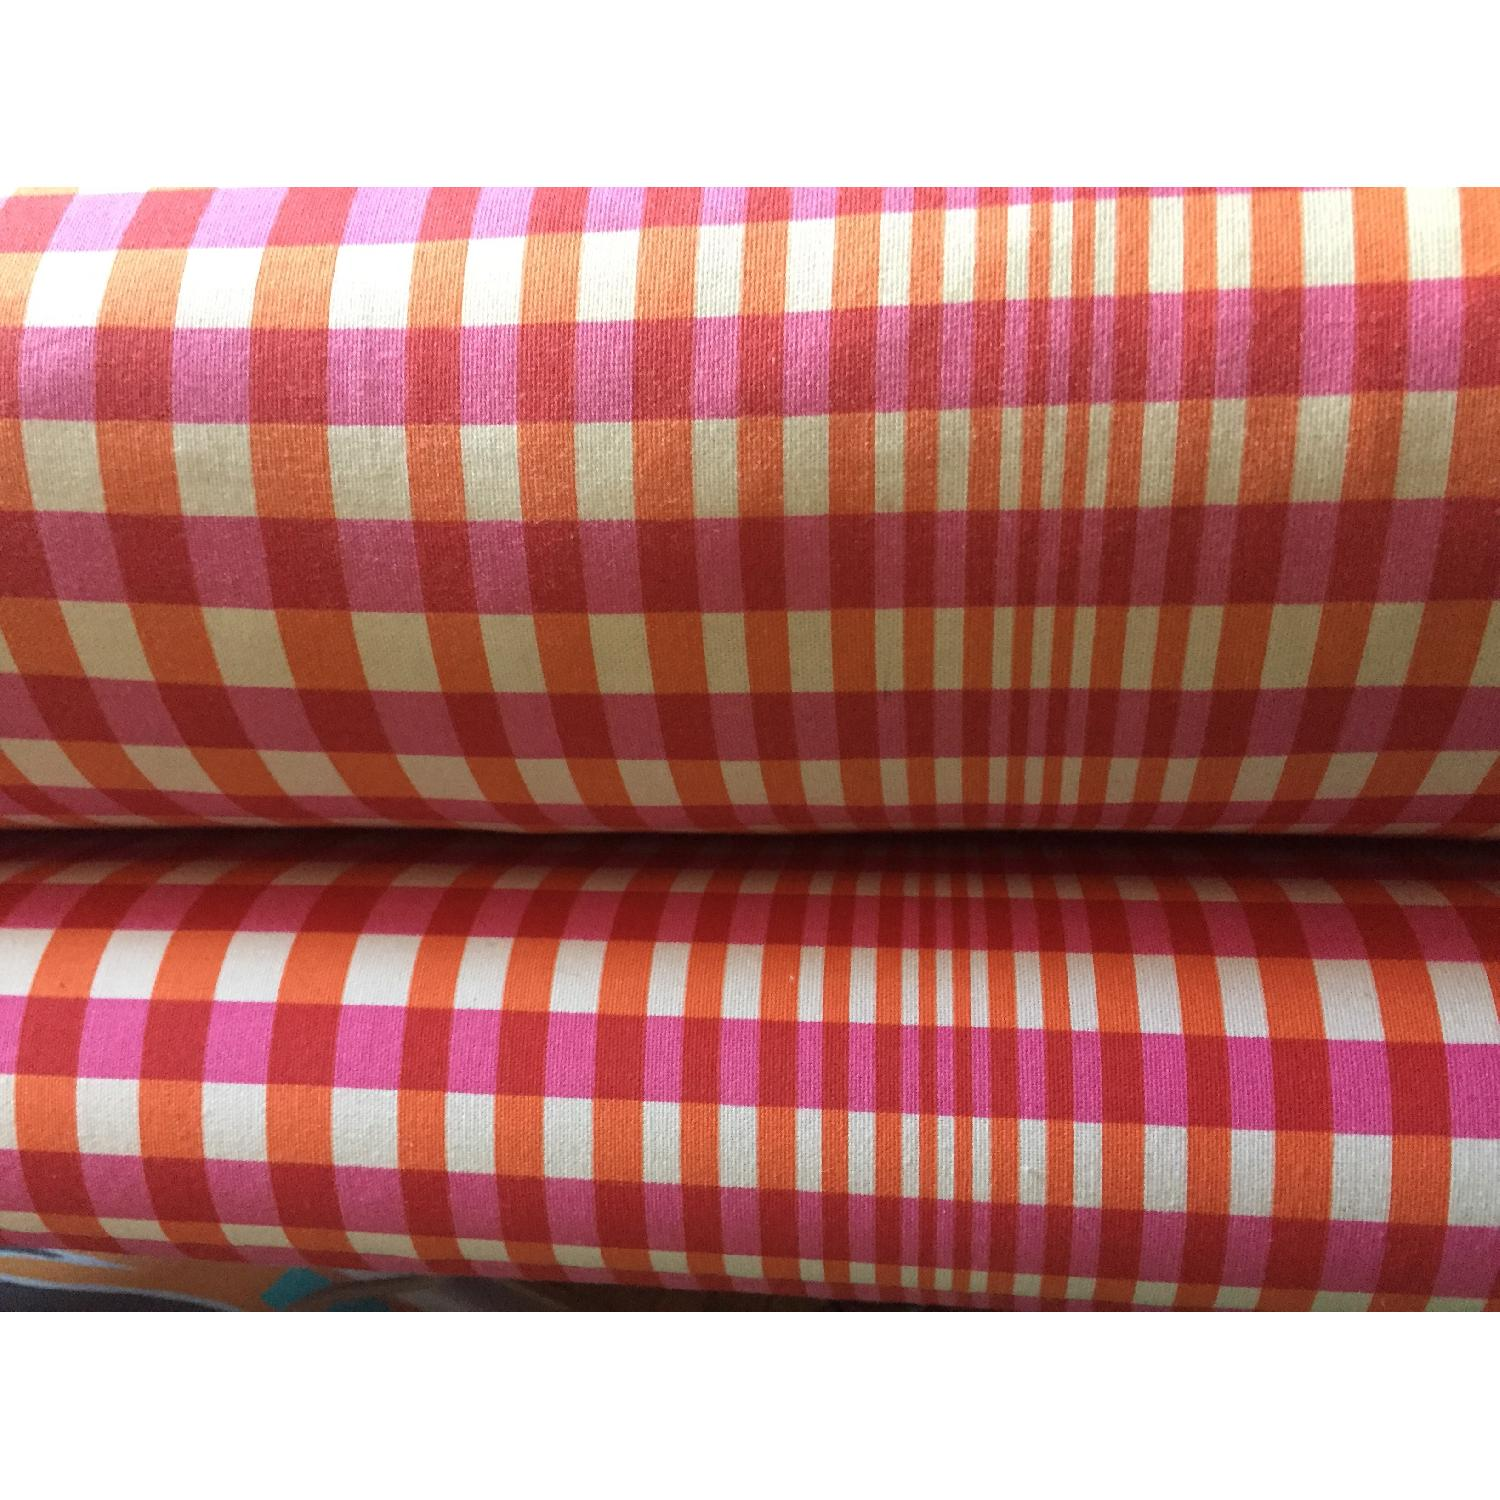 CB2 Piazza Gingham Chair - image-8